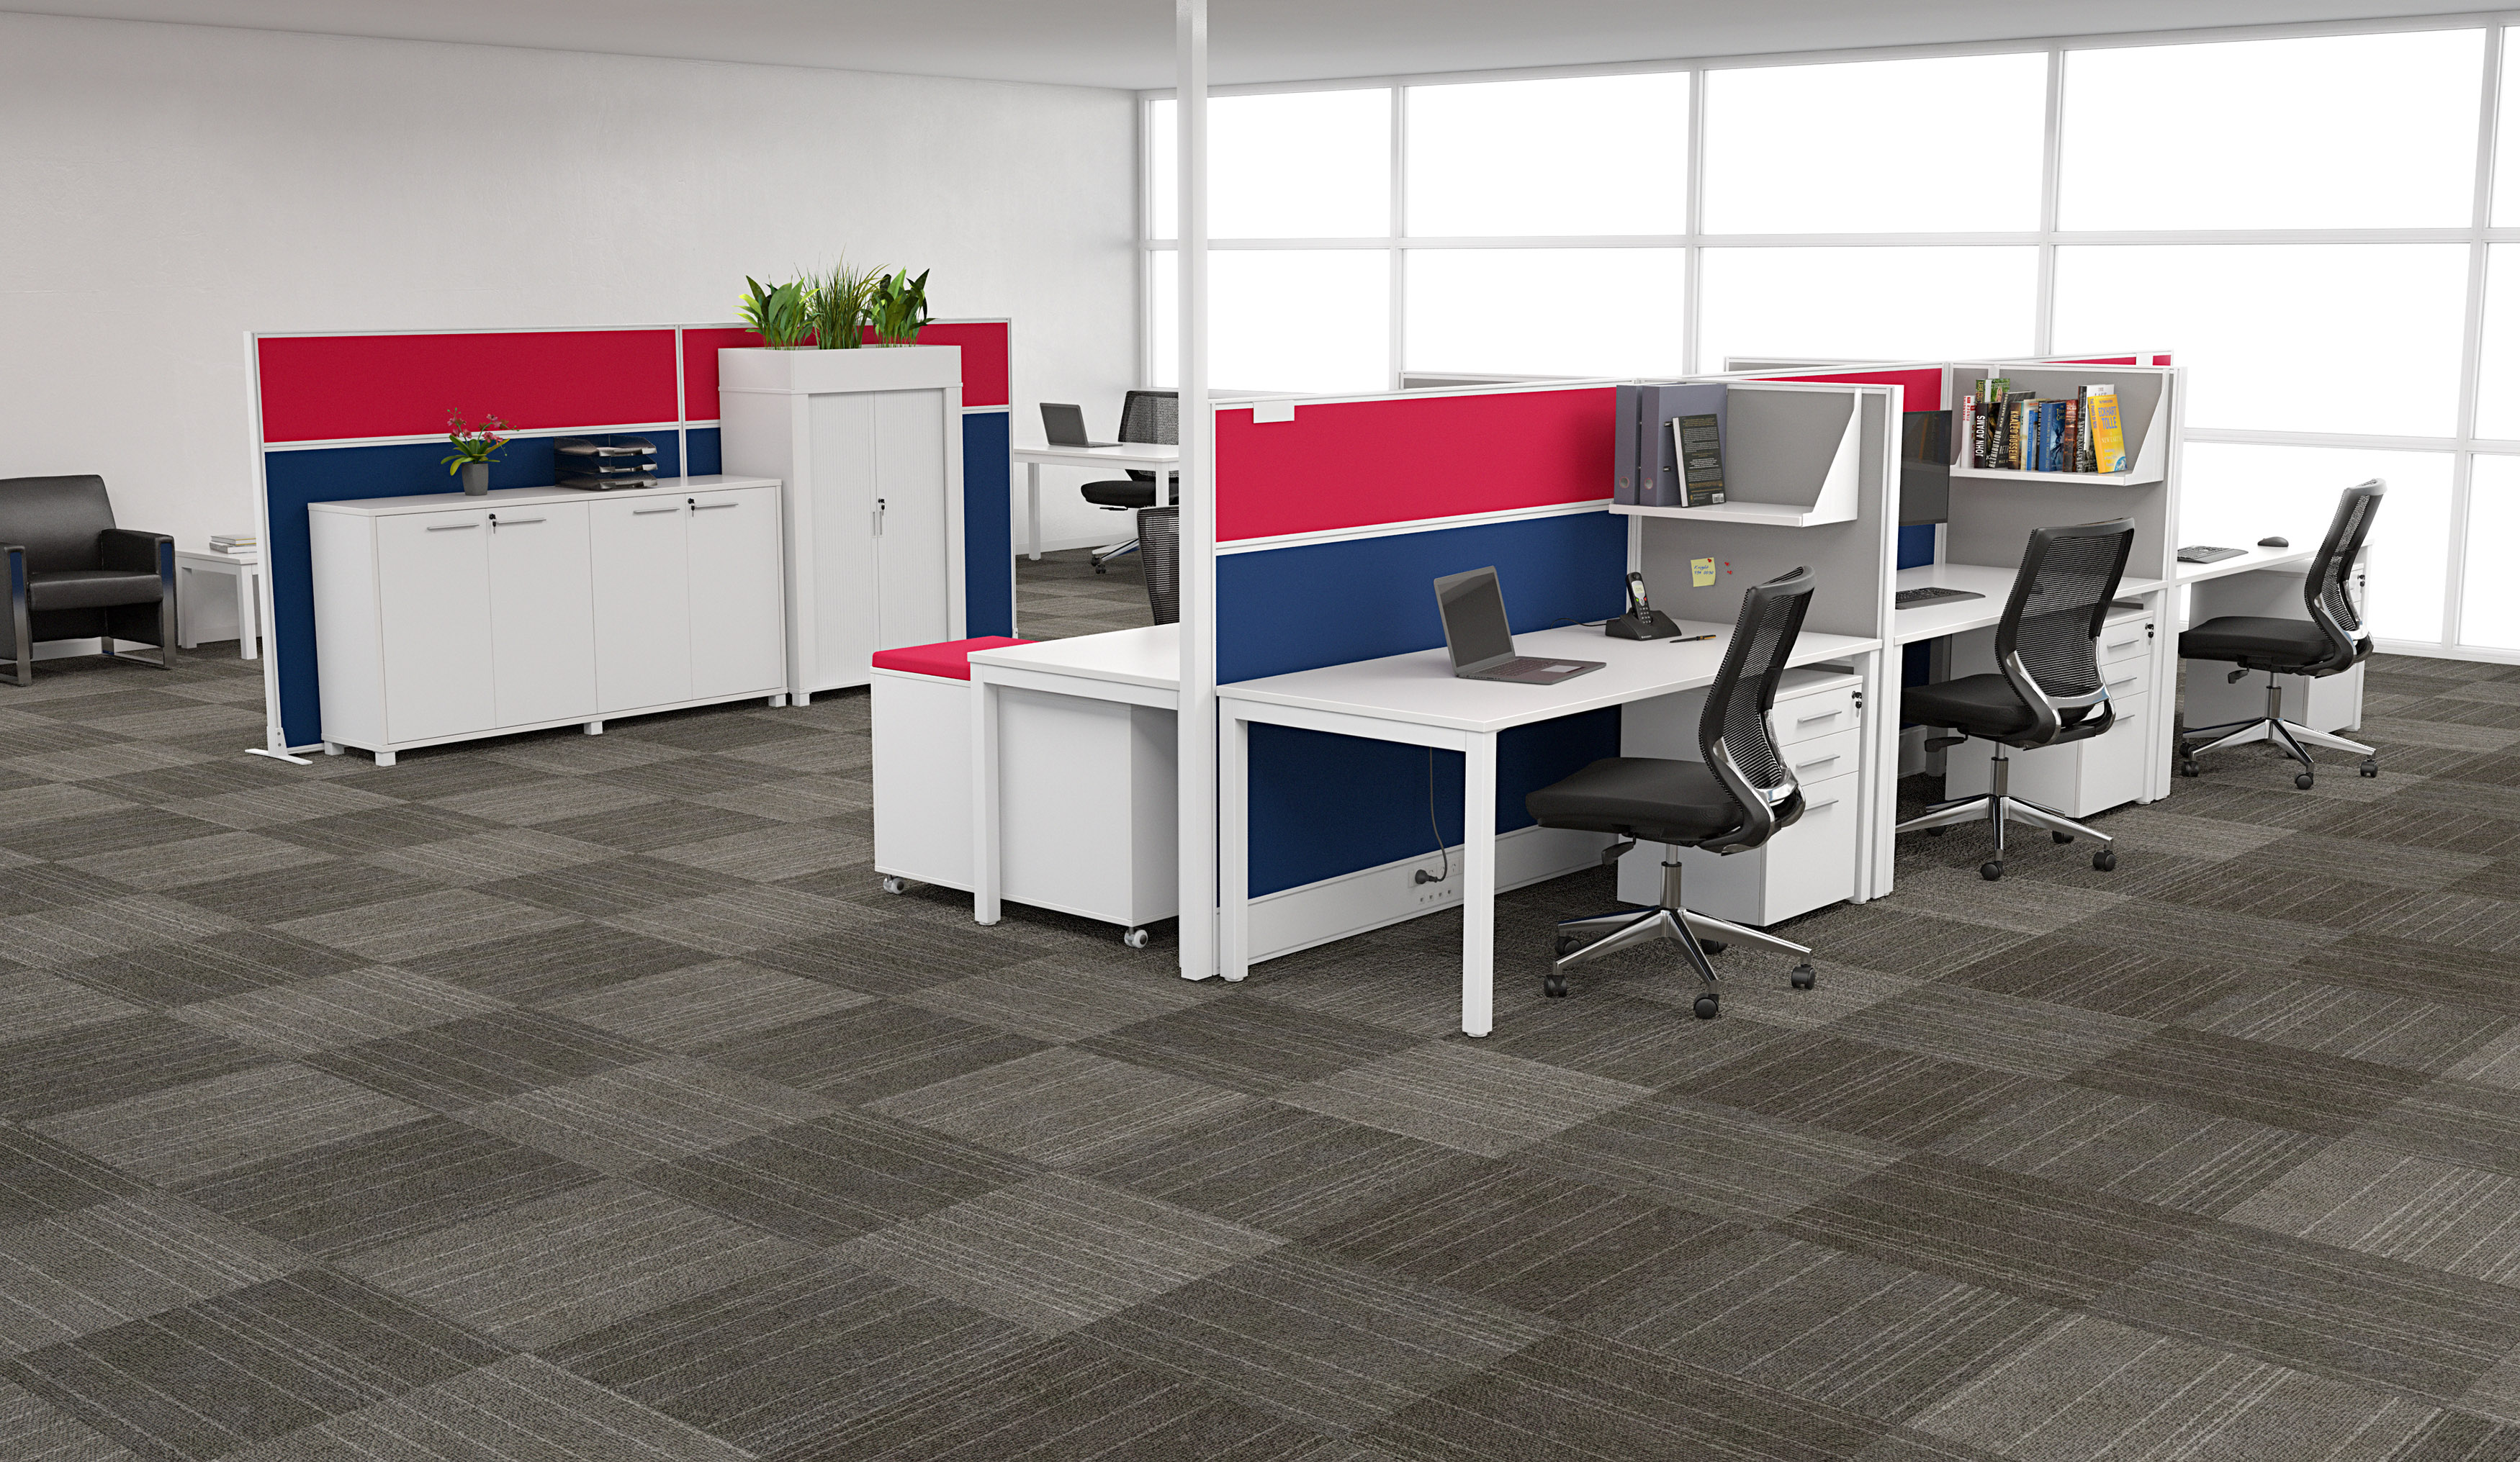 Open Plan Office Setting with a 6 Person Workstations an Privacy Screens